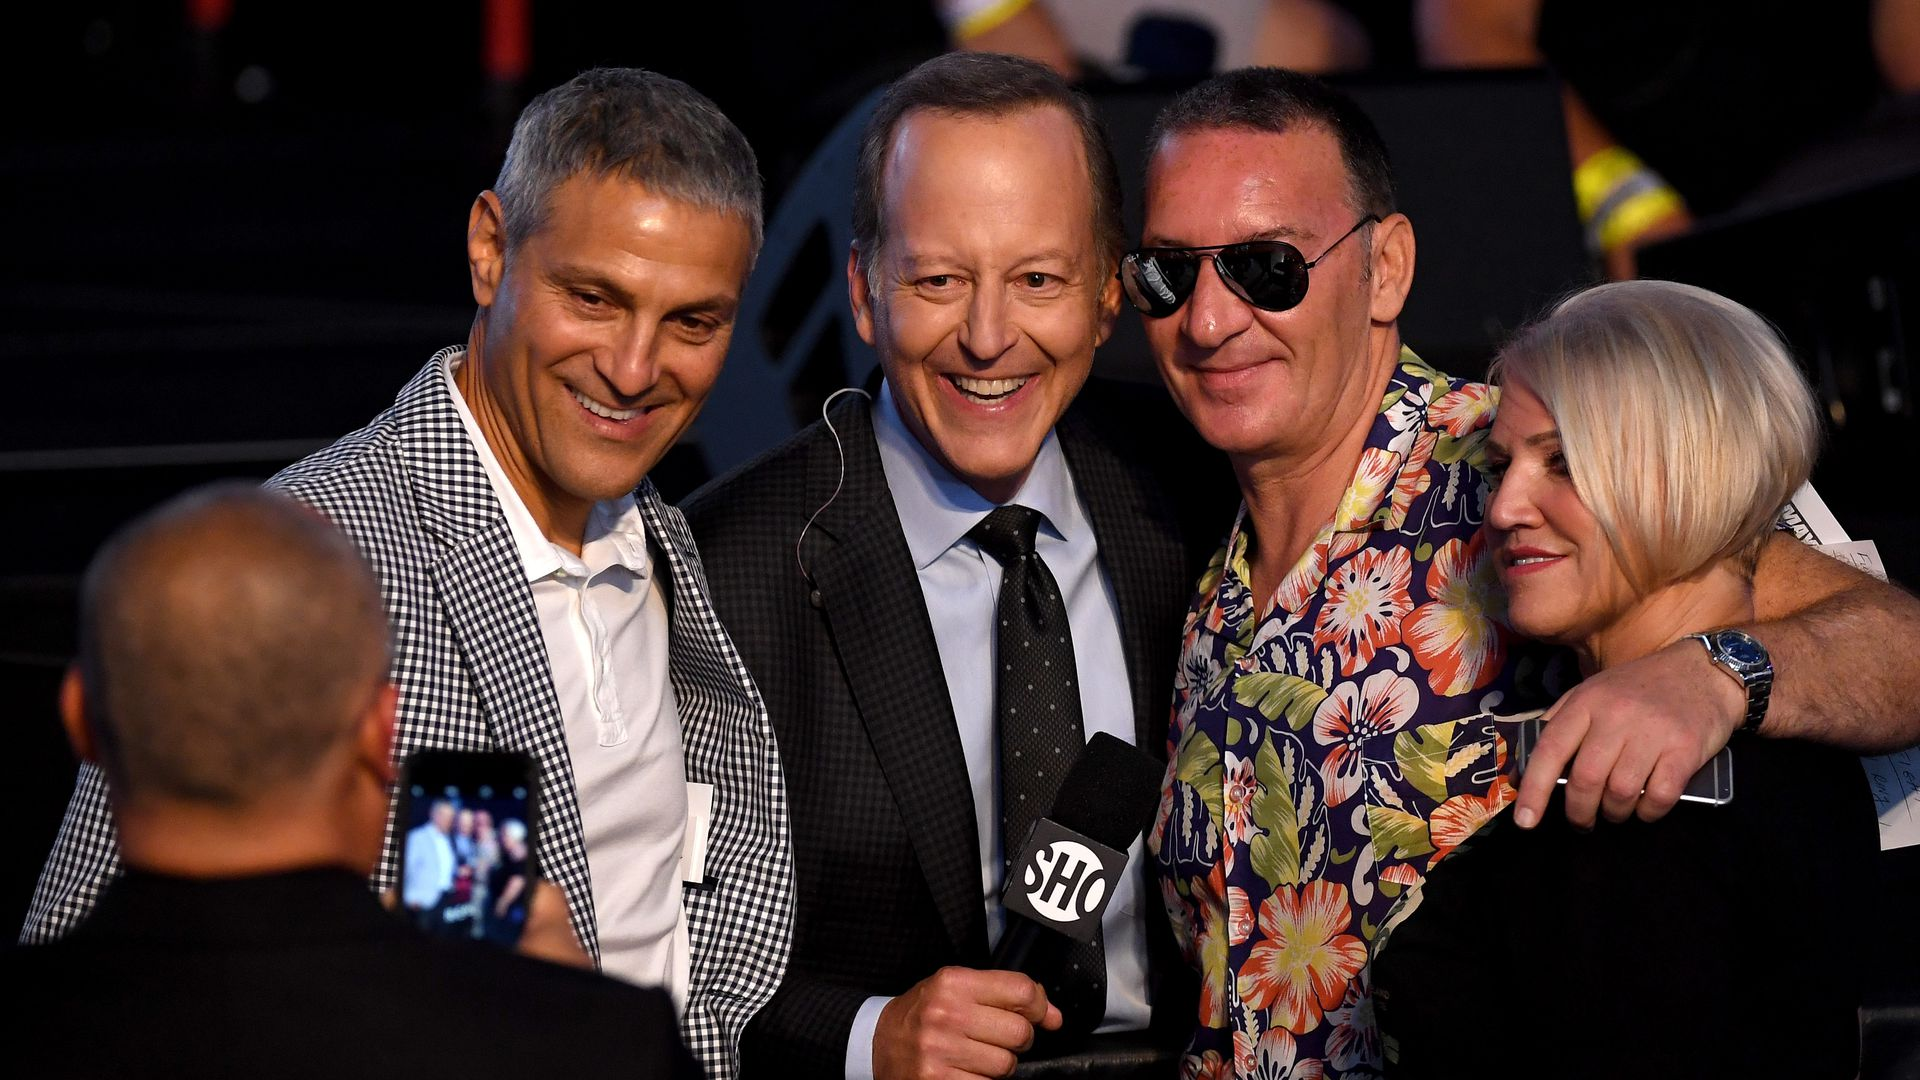 In this image, Ari Emanuel poses with two men and a blonde woman for a picture.